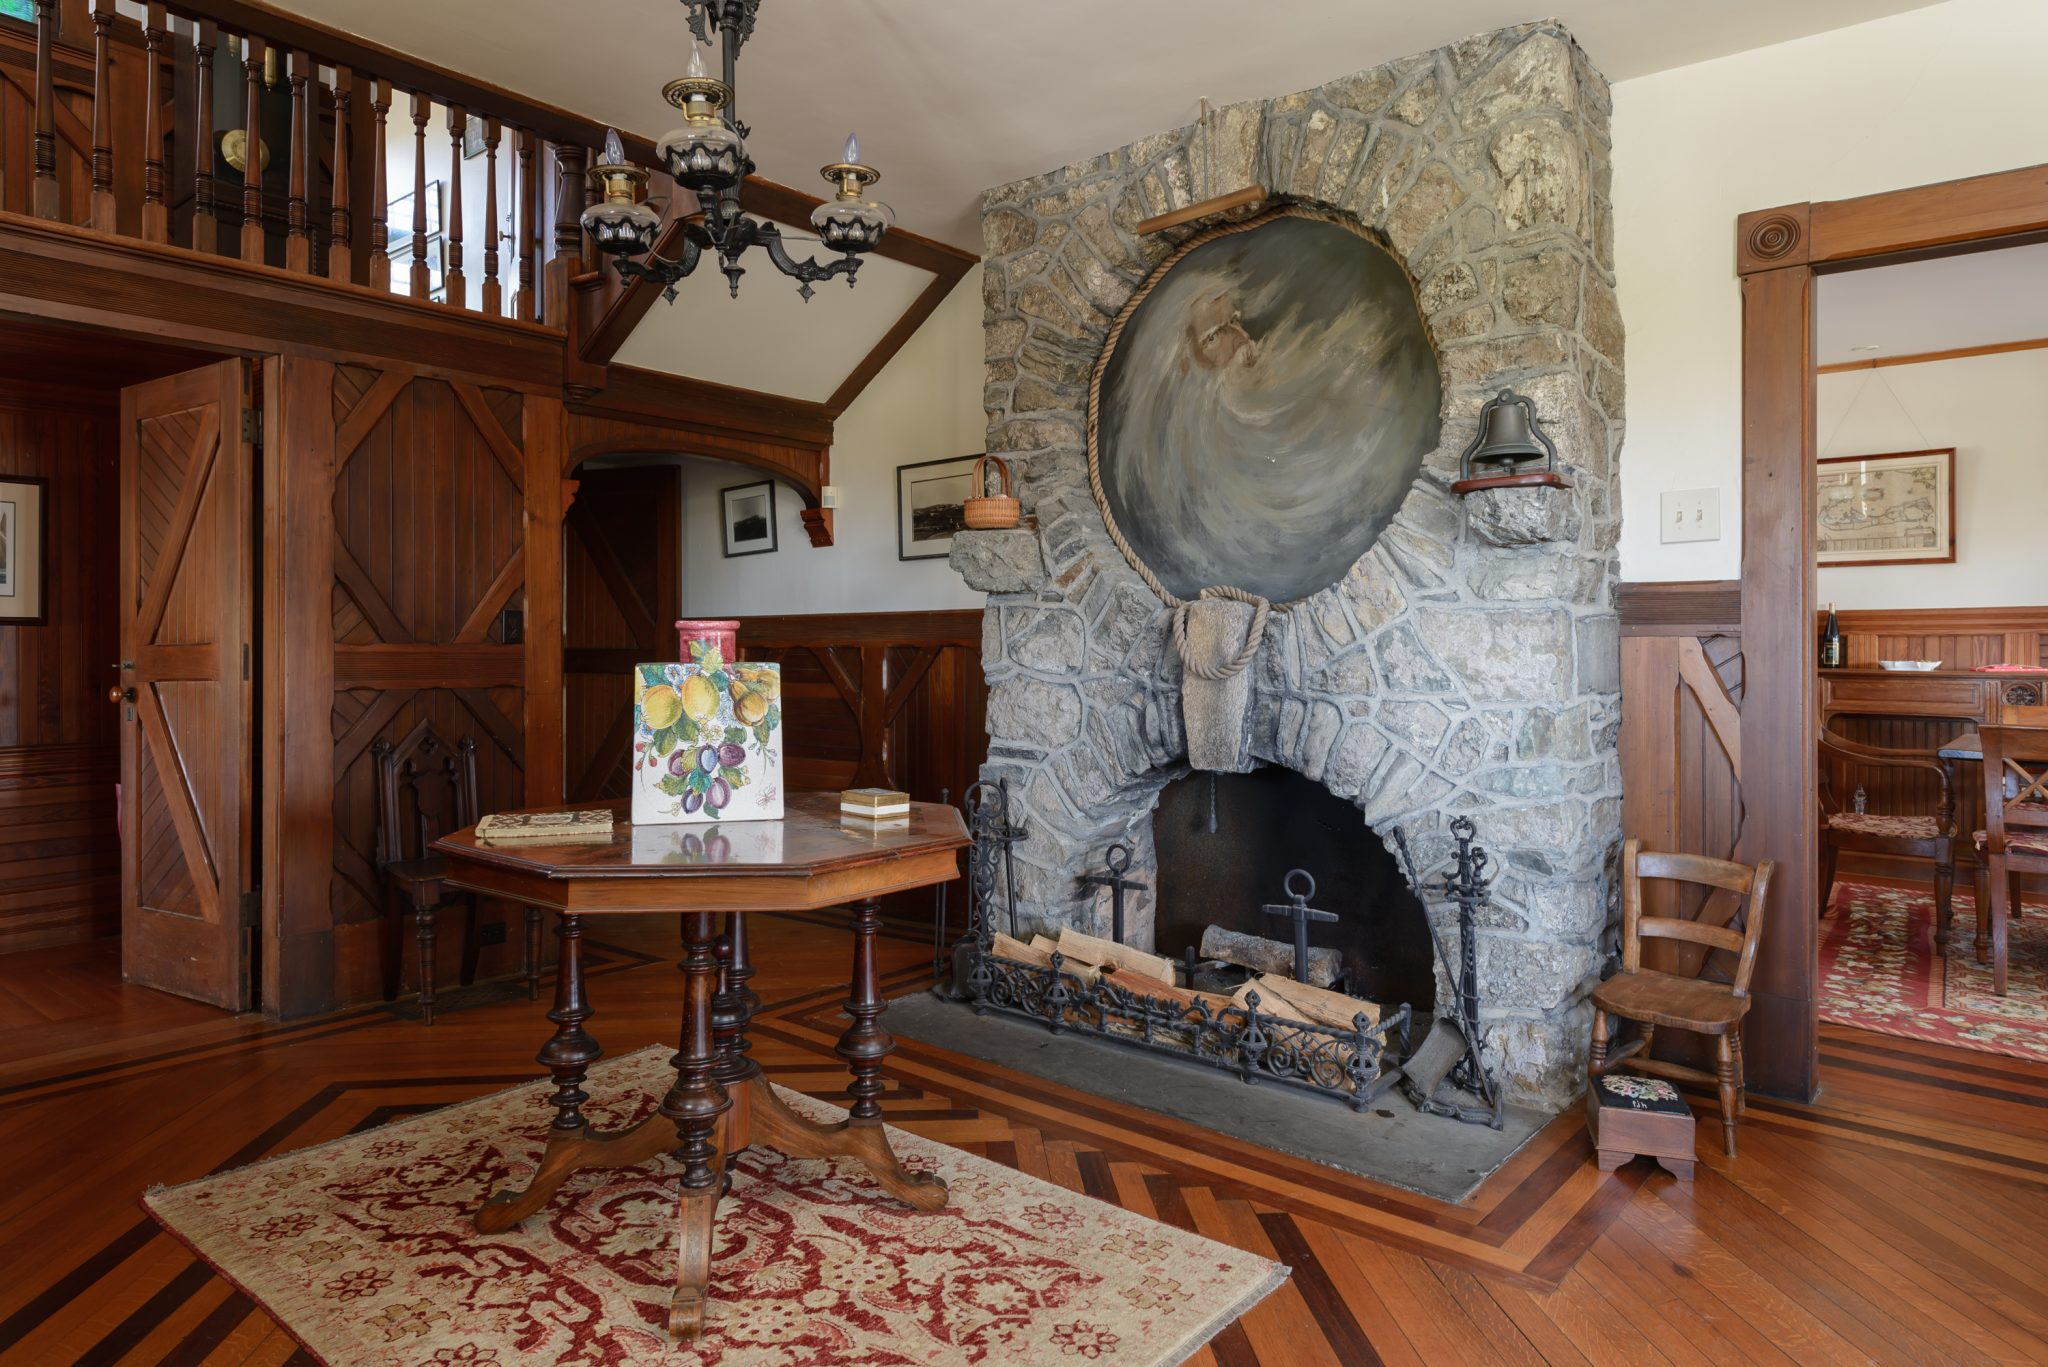 """A PORTRAIT OF """"Old North Wind"""" by landscape artist William Trost Richards hangs above this original stone fireplace. / COURTESY CONCIERGE AUCTIONS"""